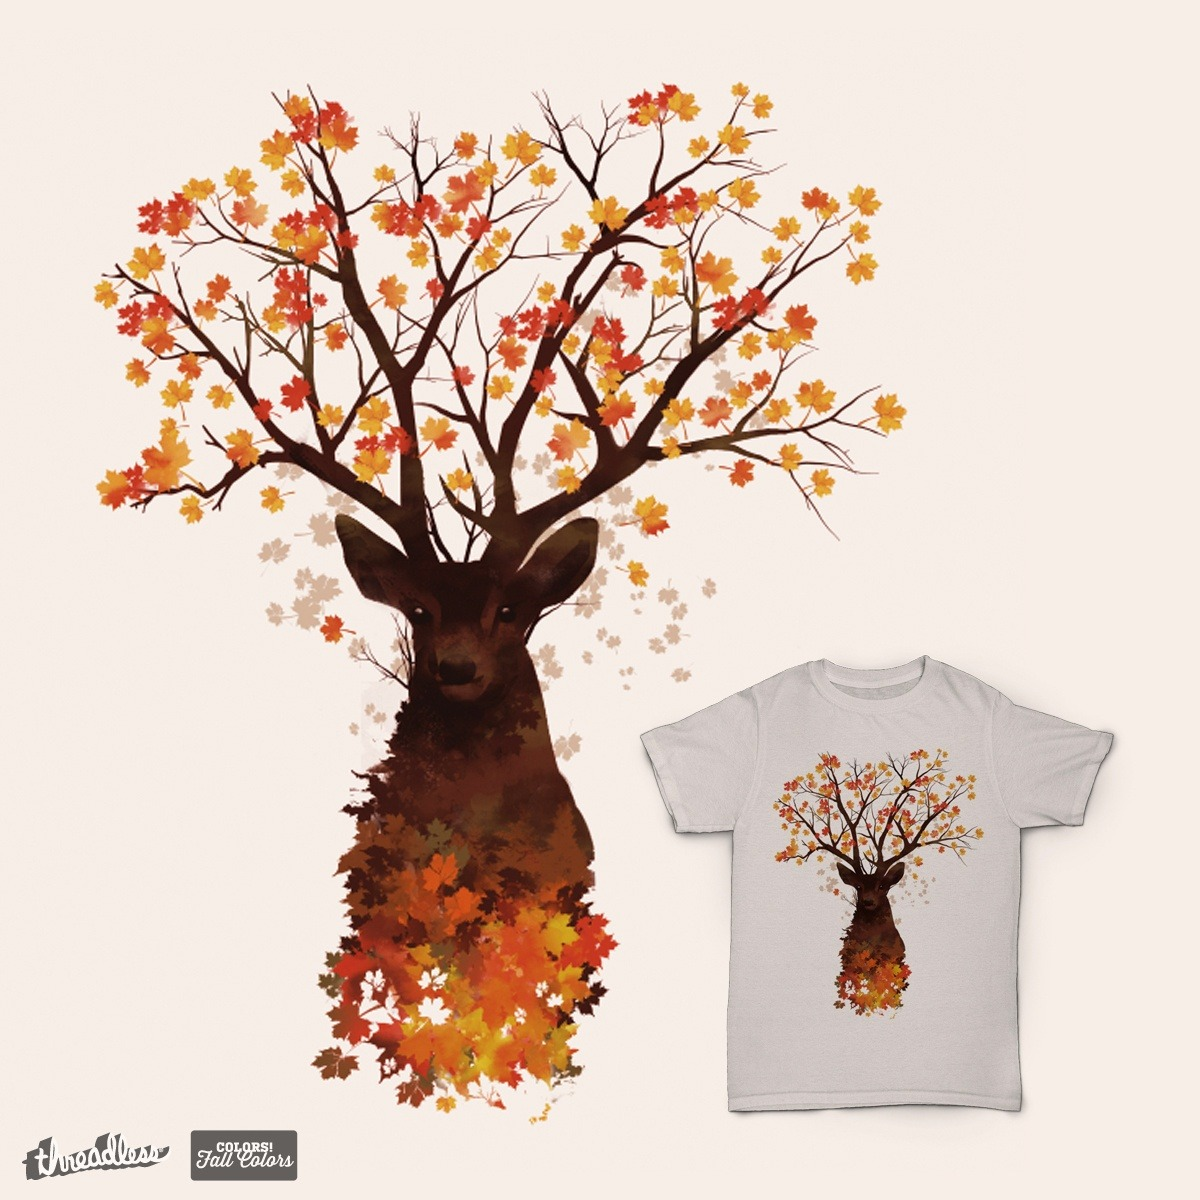 """Autumn is just around the corner, and """"Into the Woods"""" by Dan Elijah Fajardois currently the highest scoring design in our Fall Colors design challenge! Artists, fall into the world of bonfires, changing leaves, and apple cider and submit to this design challenge!"""